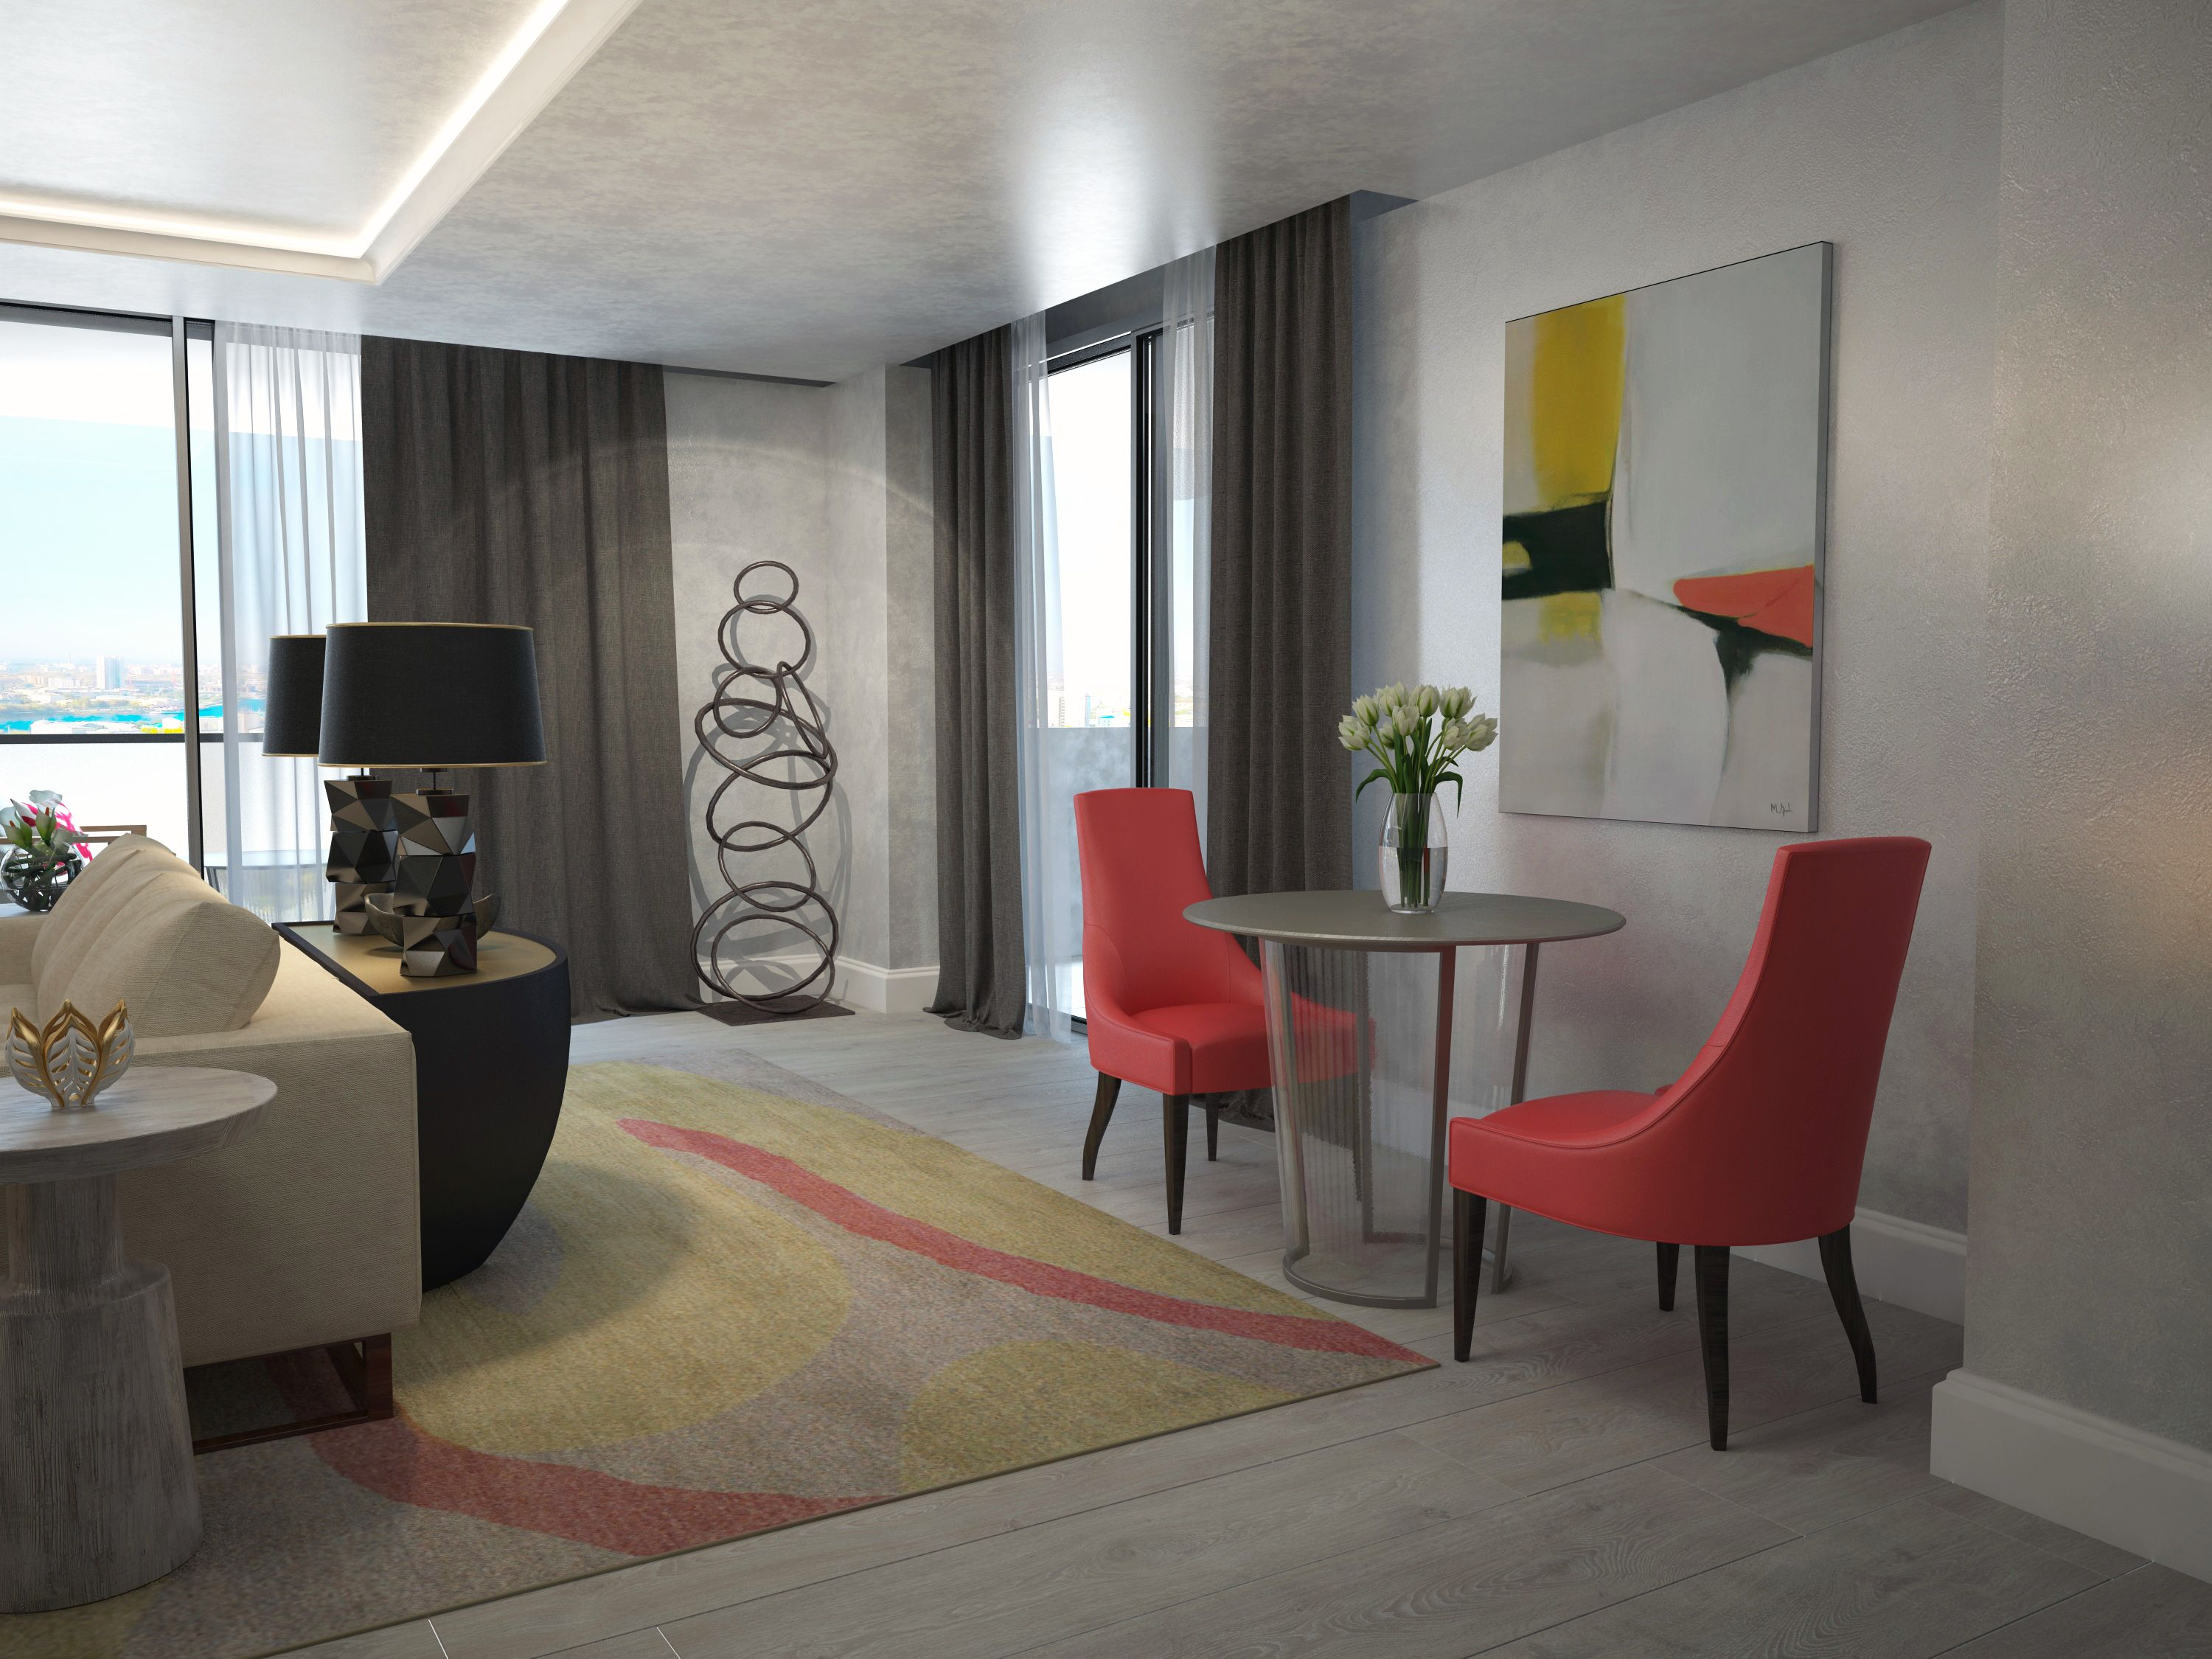 Living Room Design With A Pop Of Color In 2020 Living Room Designs Living Room Interior #pop #of #color #in #living #room